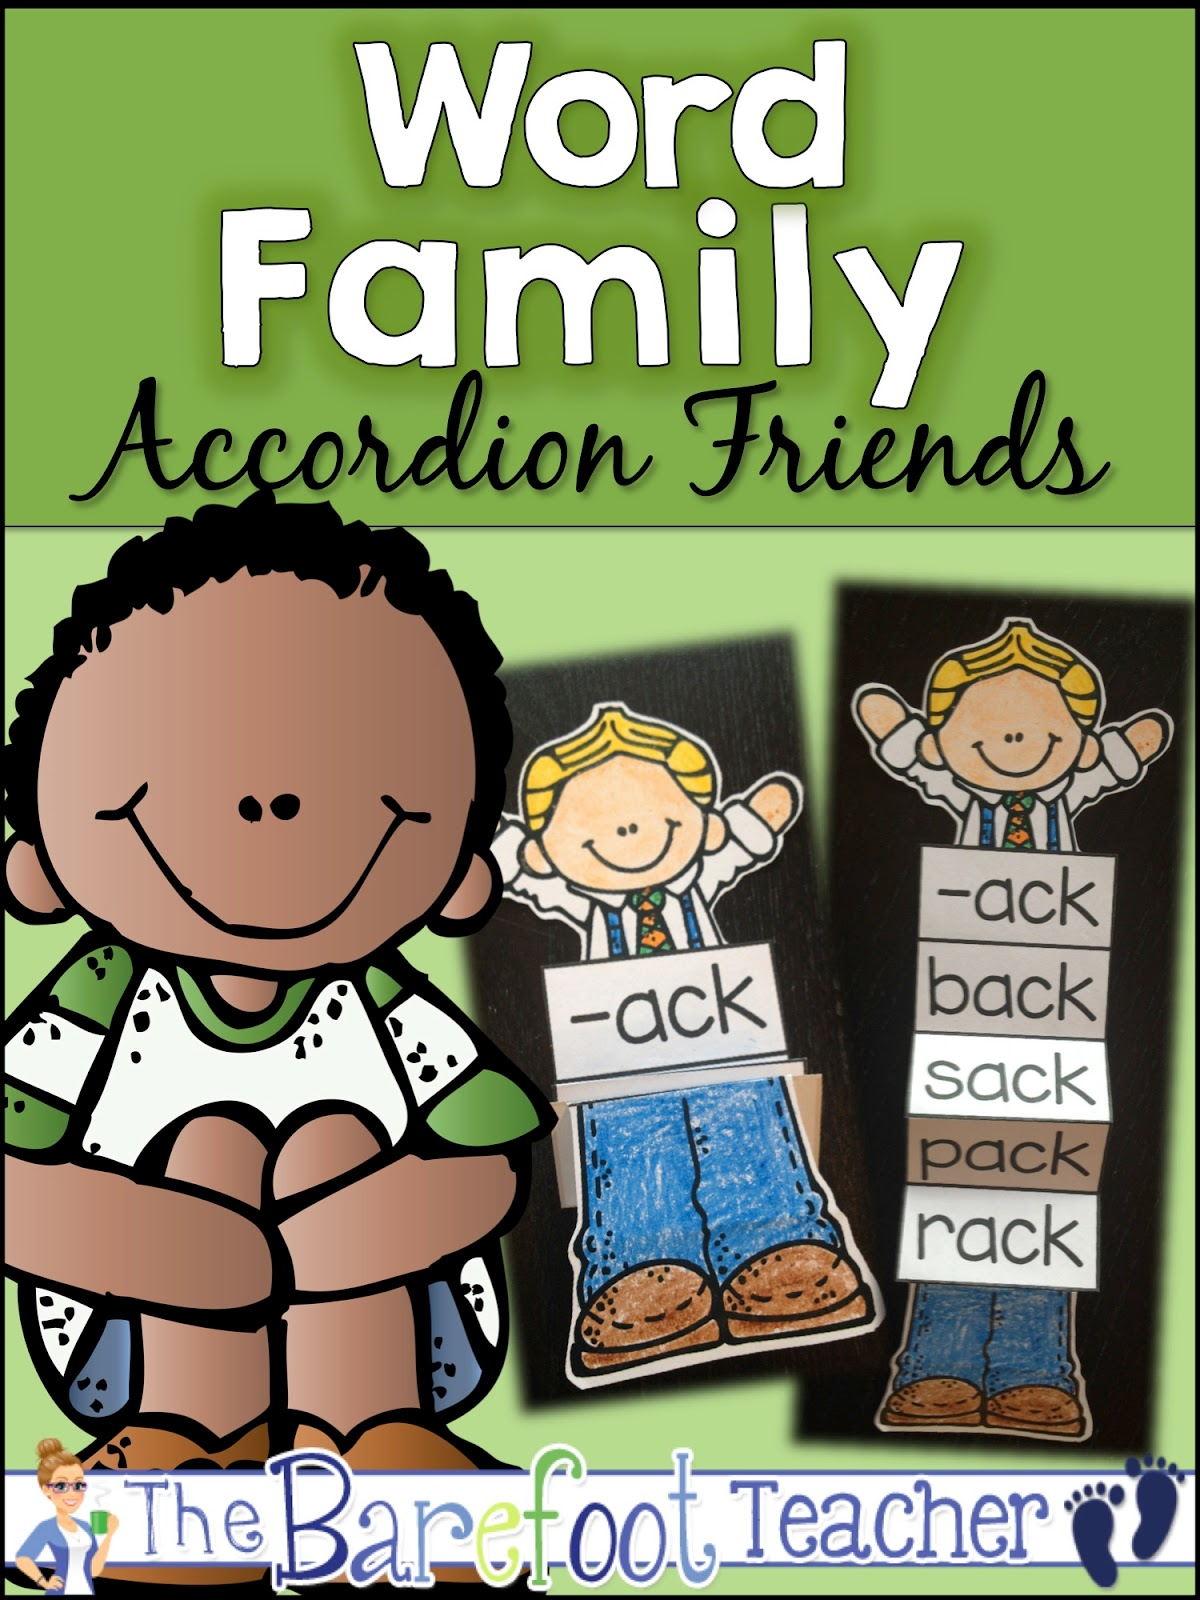 The Barefoot Teacher: Word Family Accordion Friends